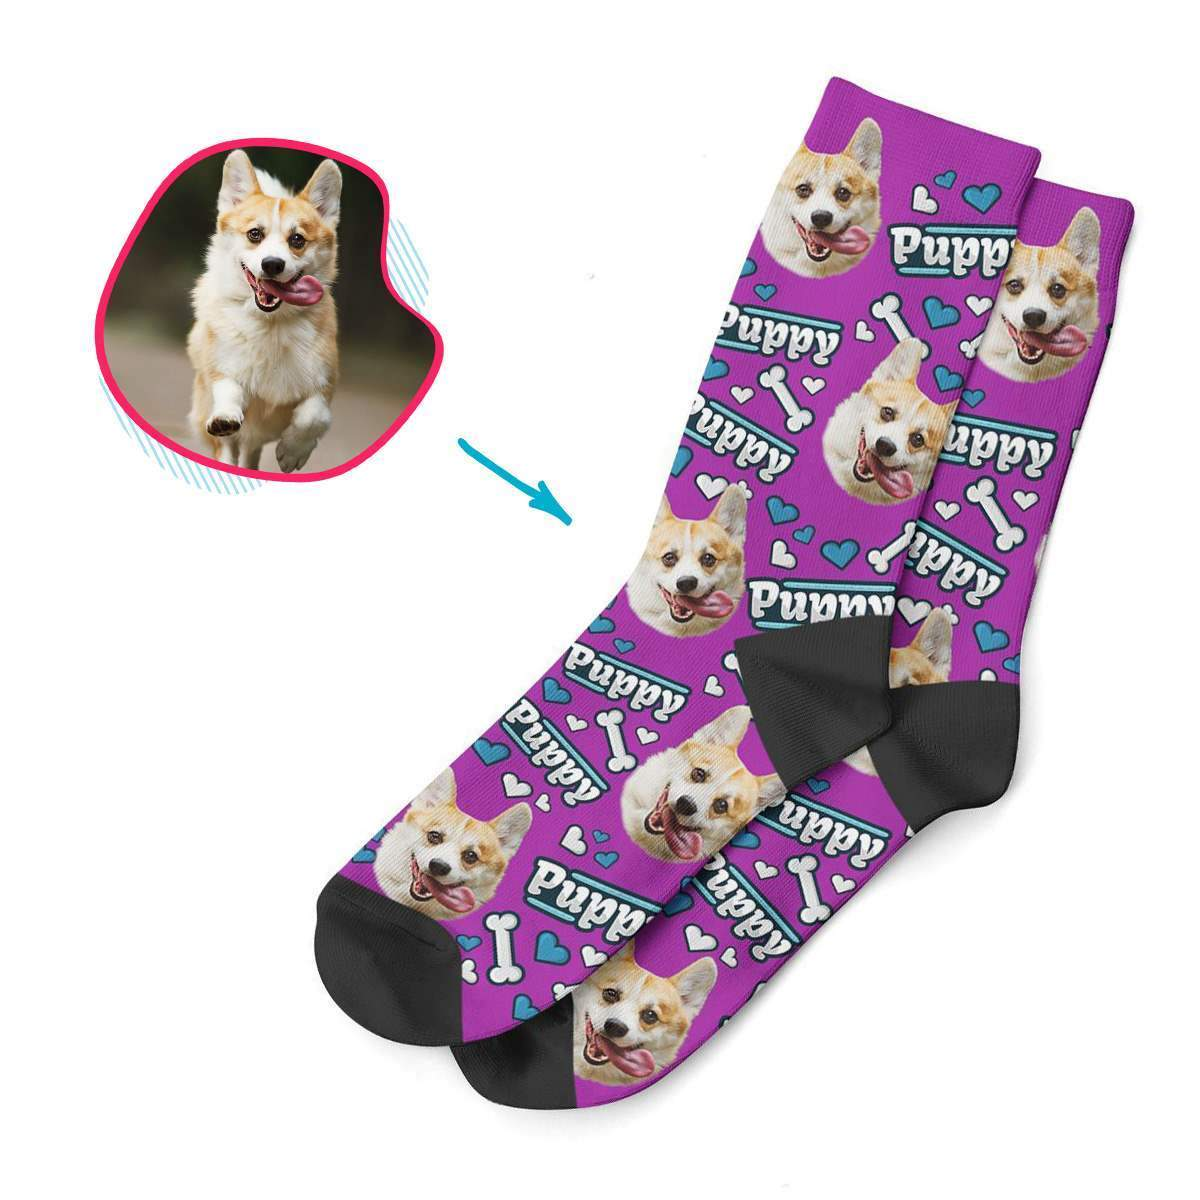 purple Puppy socks personalized with photo of face printed on them